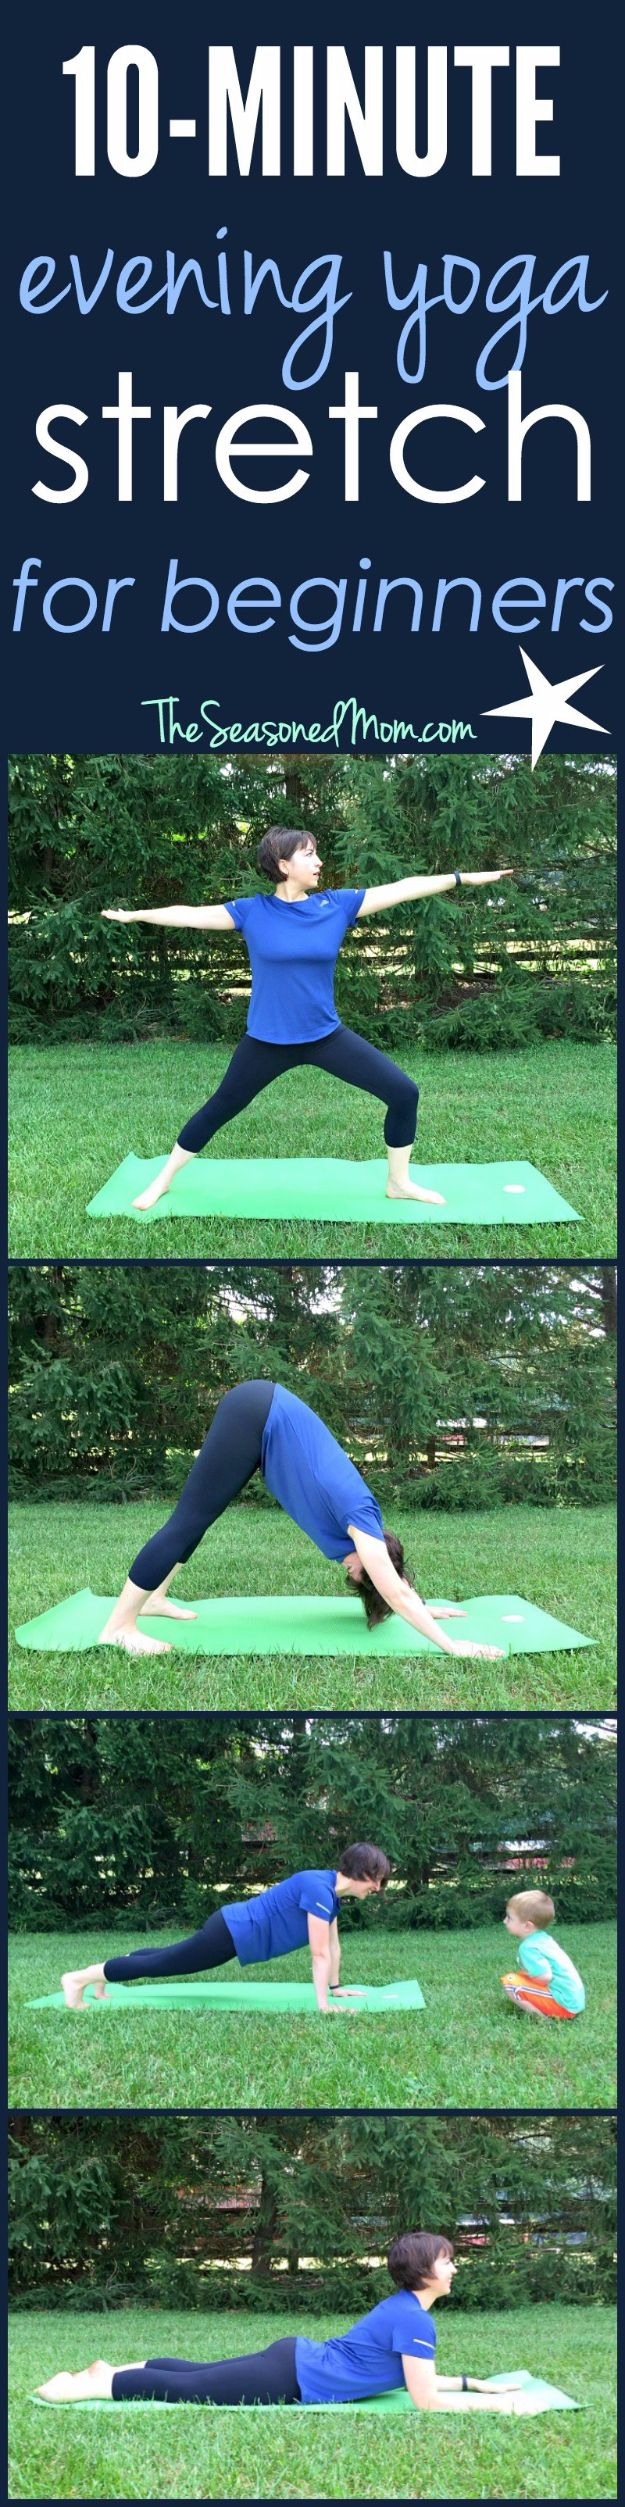 Best Quick At Home Workouts - 10 Minute Evening Yoga Stretch For Beginners - Easy Tutorials and Work Out Ideas for Strength Training and Exercises - Step by Step Tutorials for Butt Workouts, Abs Tummy and Stomach, Legs, Arms, Chest and Back - Fast 5 and 10 Minute Workouts You Can Do On Your Lunch Break, In Car, in Hotel #exercise #health